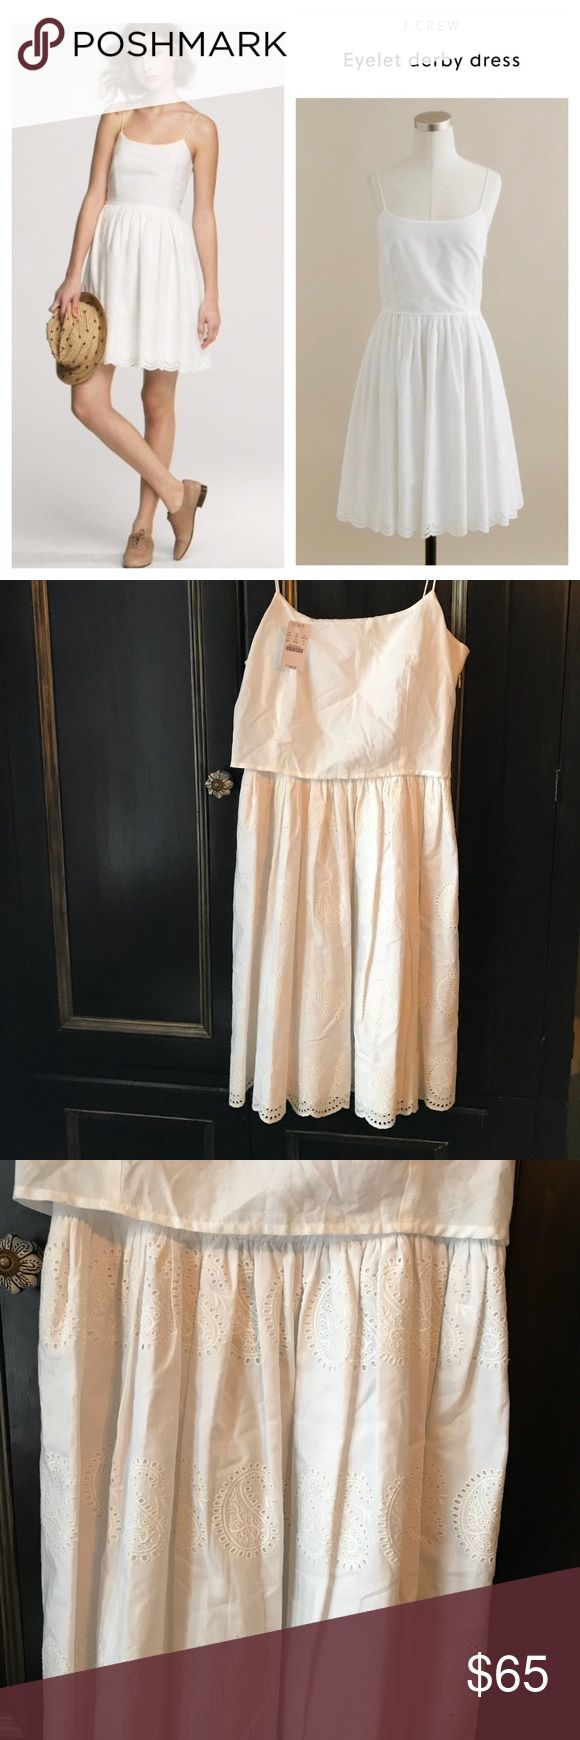 "JCrew eyelet derby dress white 100 cotton This dress is super cute - is the eyelet derby dress by JCrew - look classy and pretty even in warm weather- 100 cotton and lined in 100 cotton- very breathable - approx measurements length 36 bust 32"" - side zipper J. Crew Dresses"